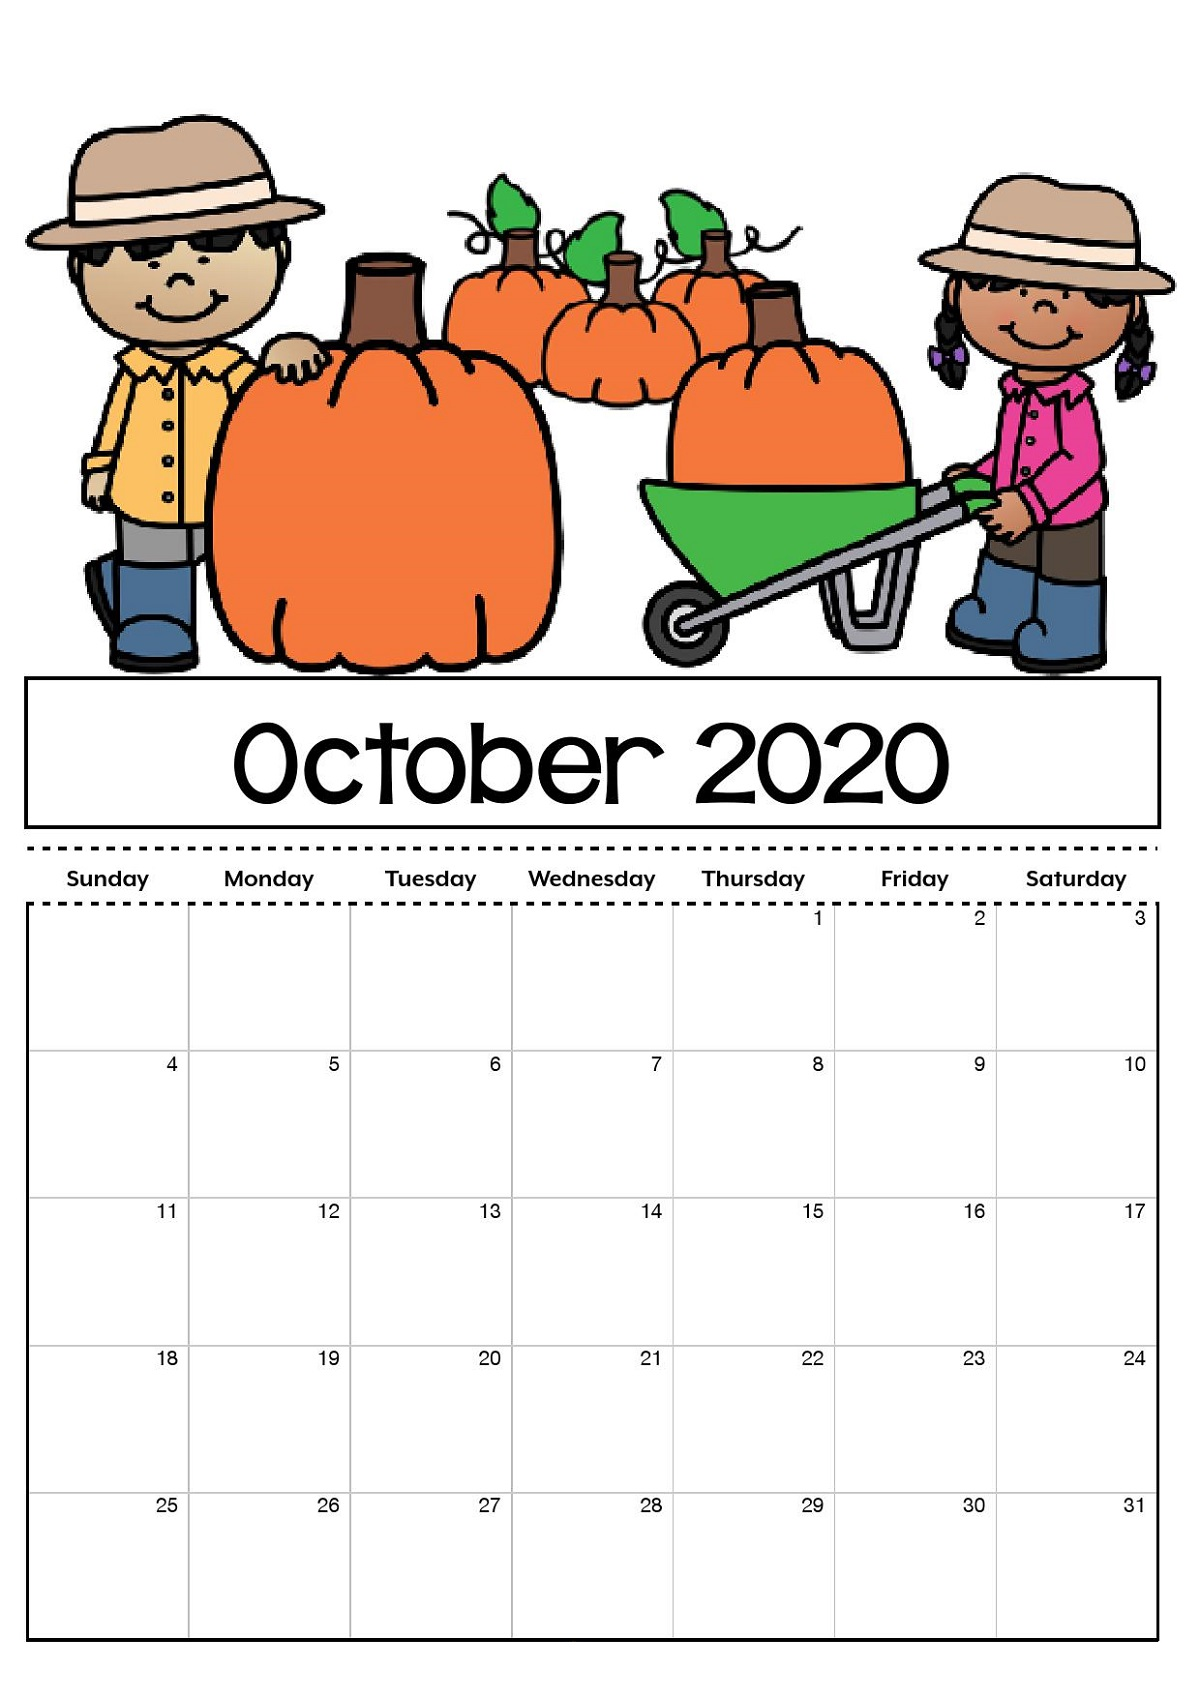 October 2020 Calendar for Kids